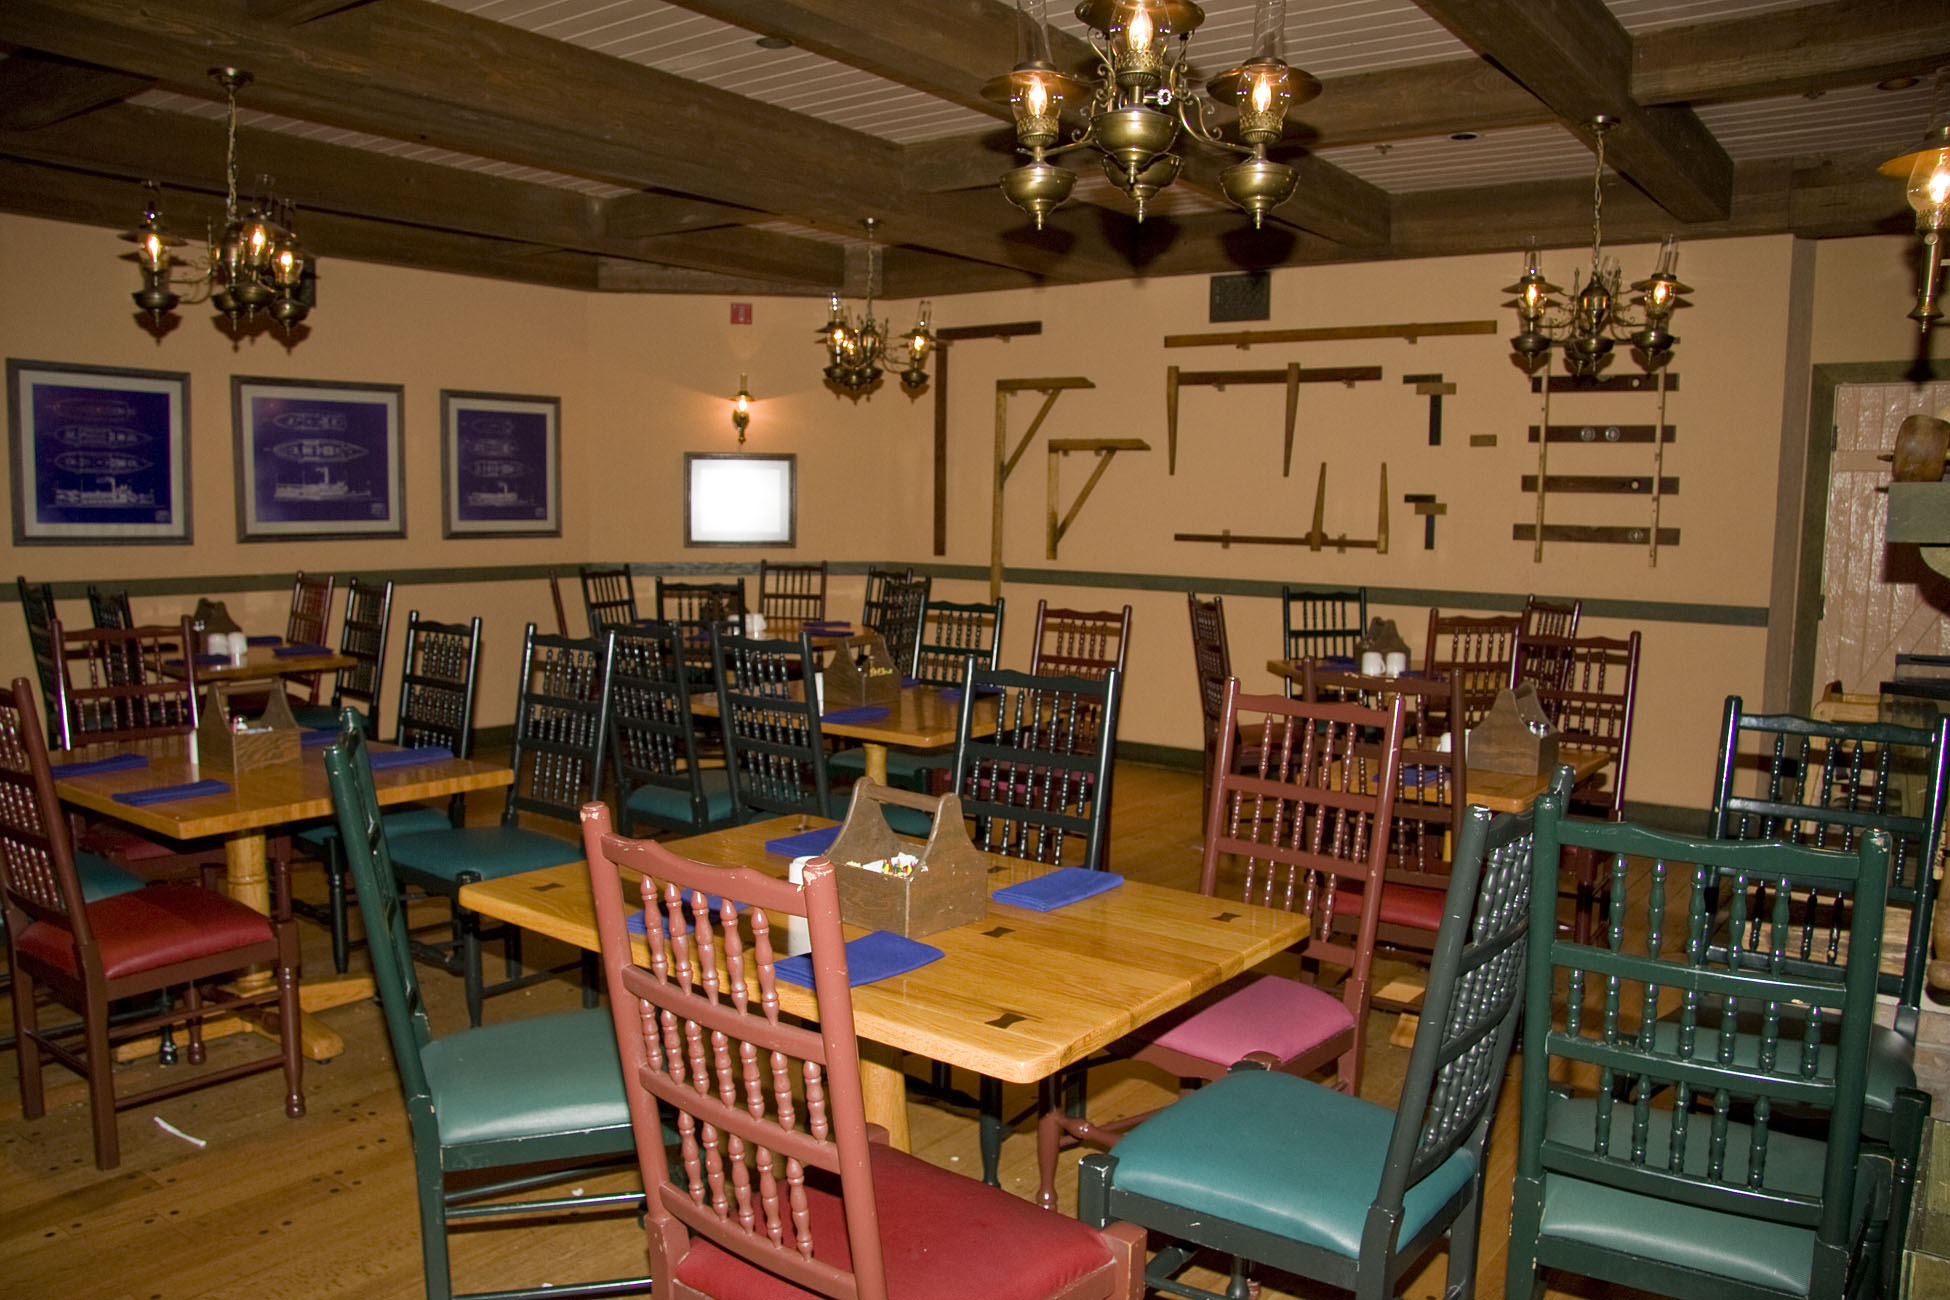 Boatwrights Dining Hall Photo Gallery